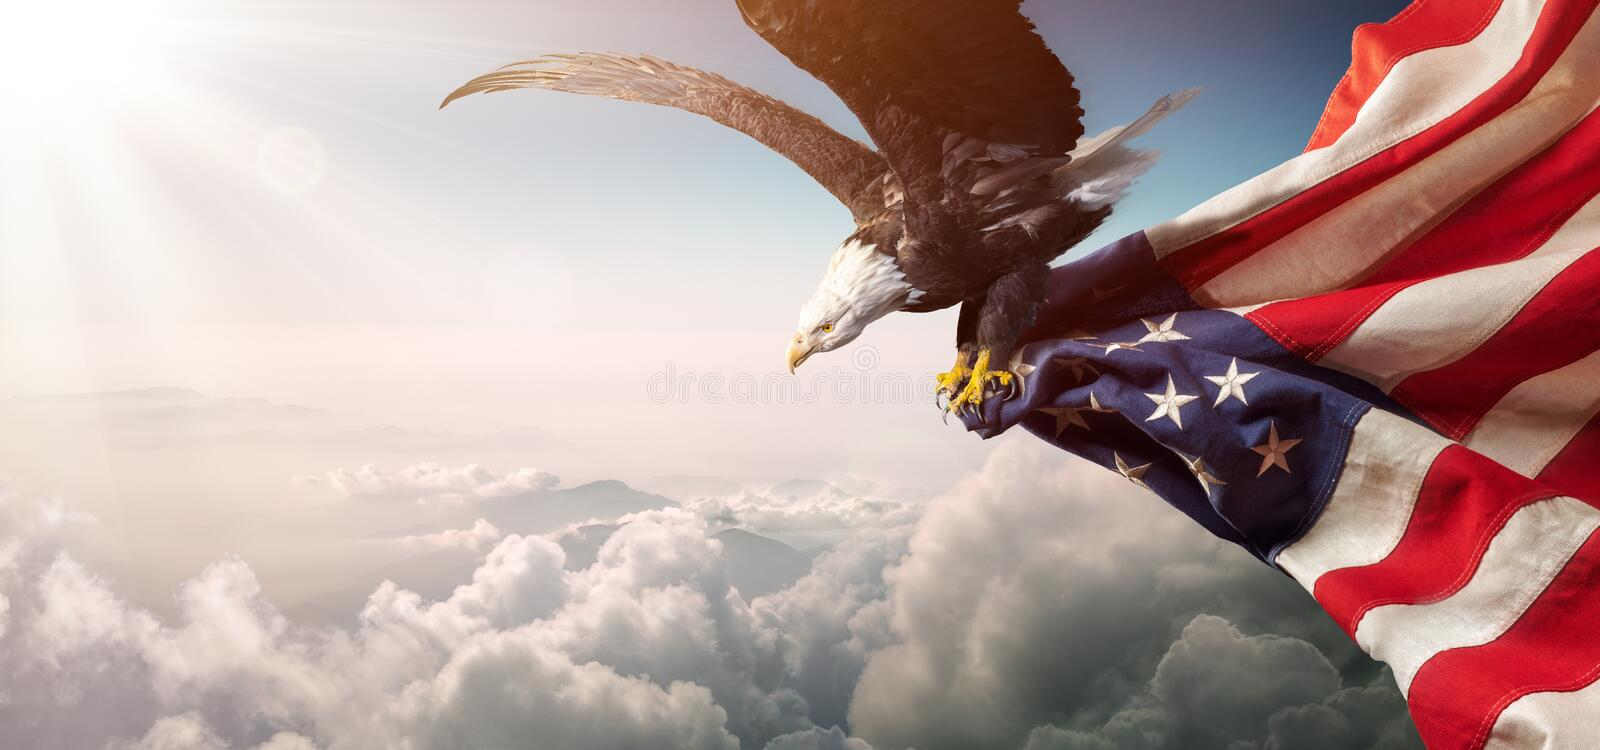 Eagle With American Flag Flies fotografie stock libere da diritti